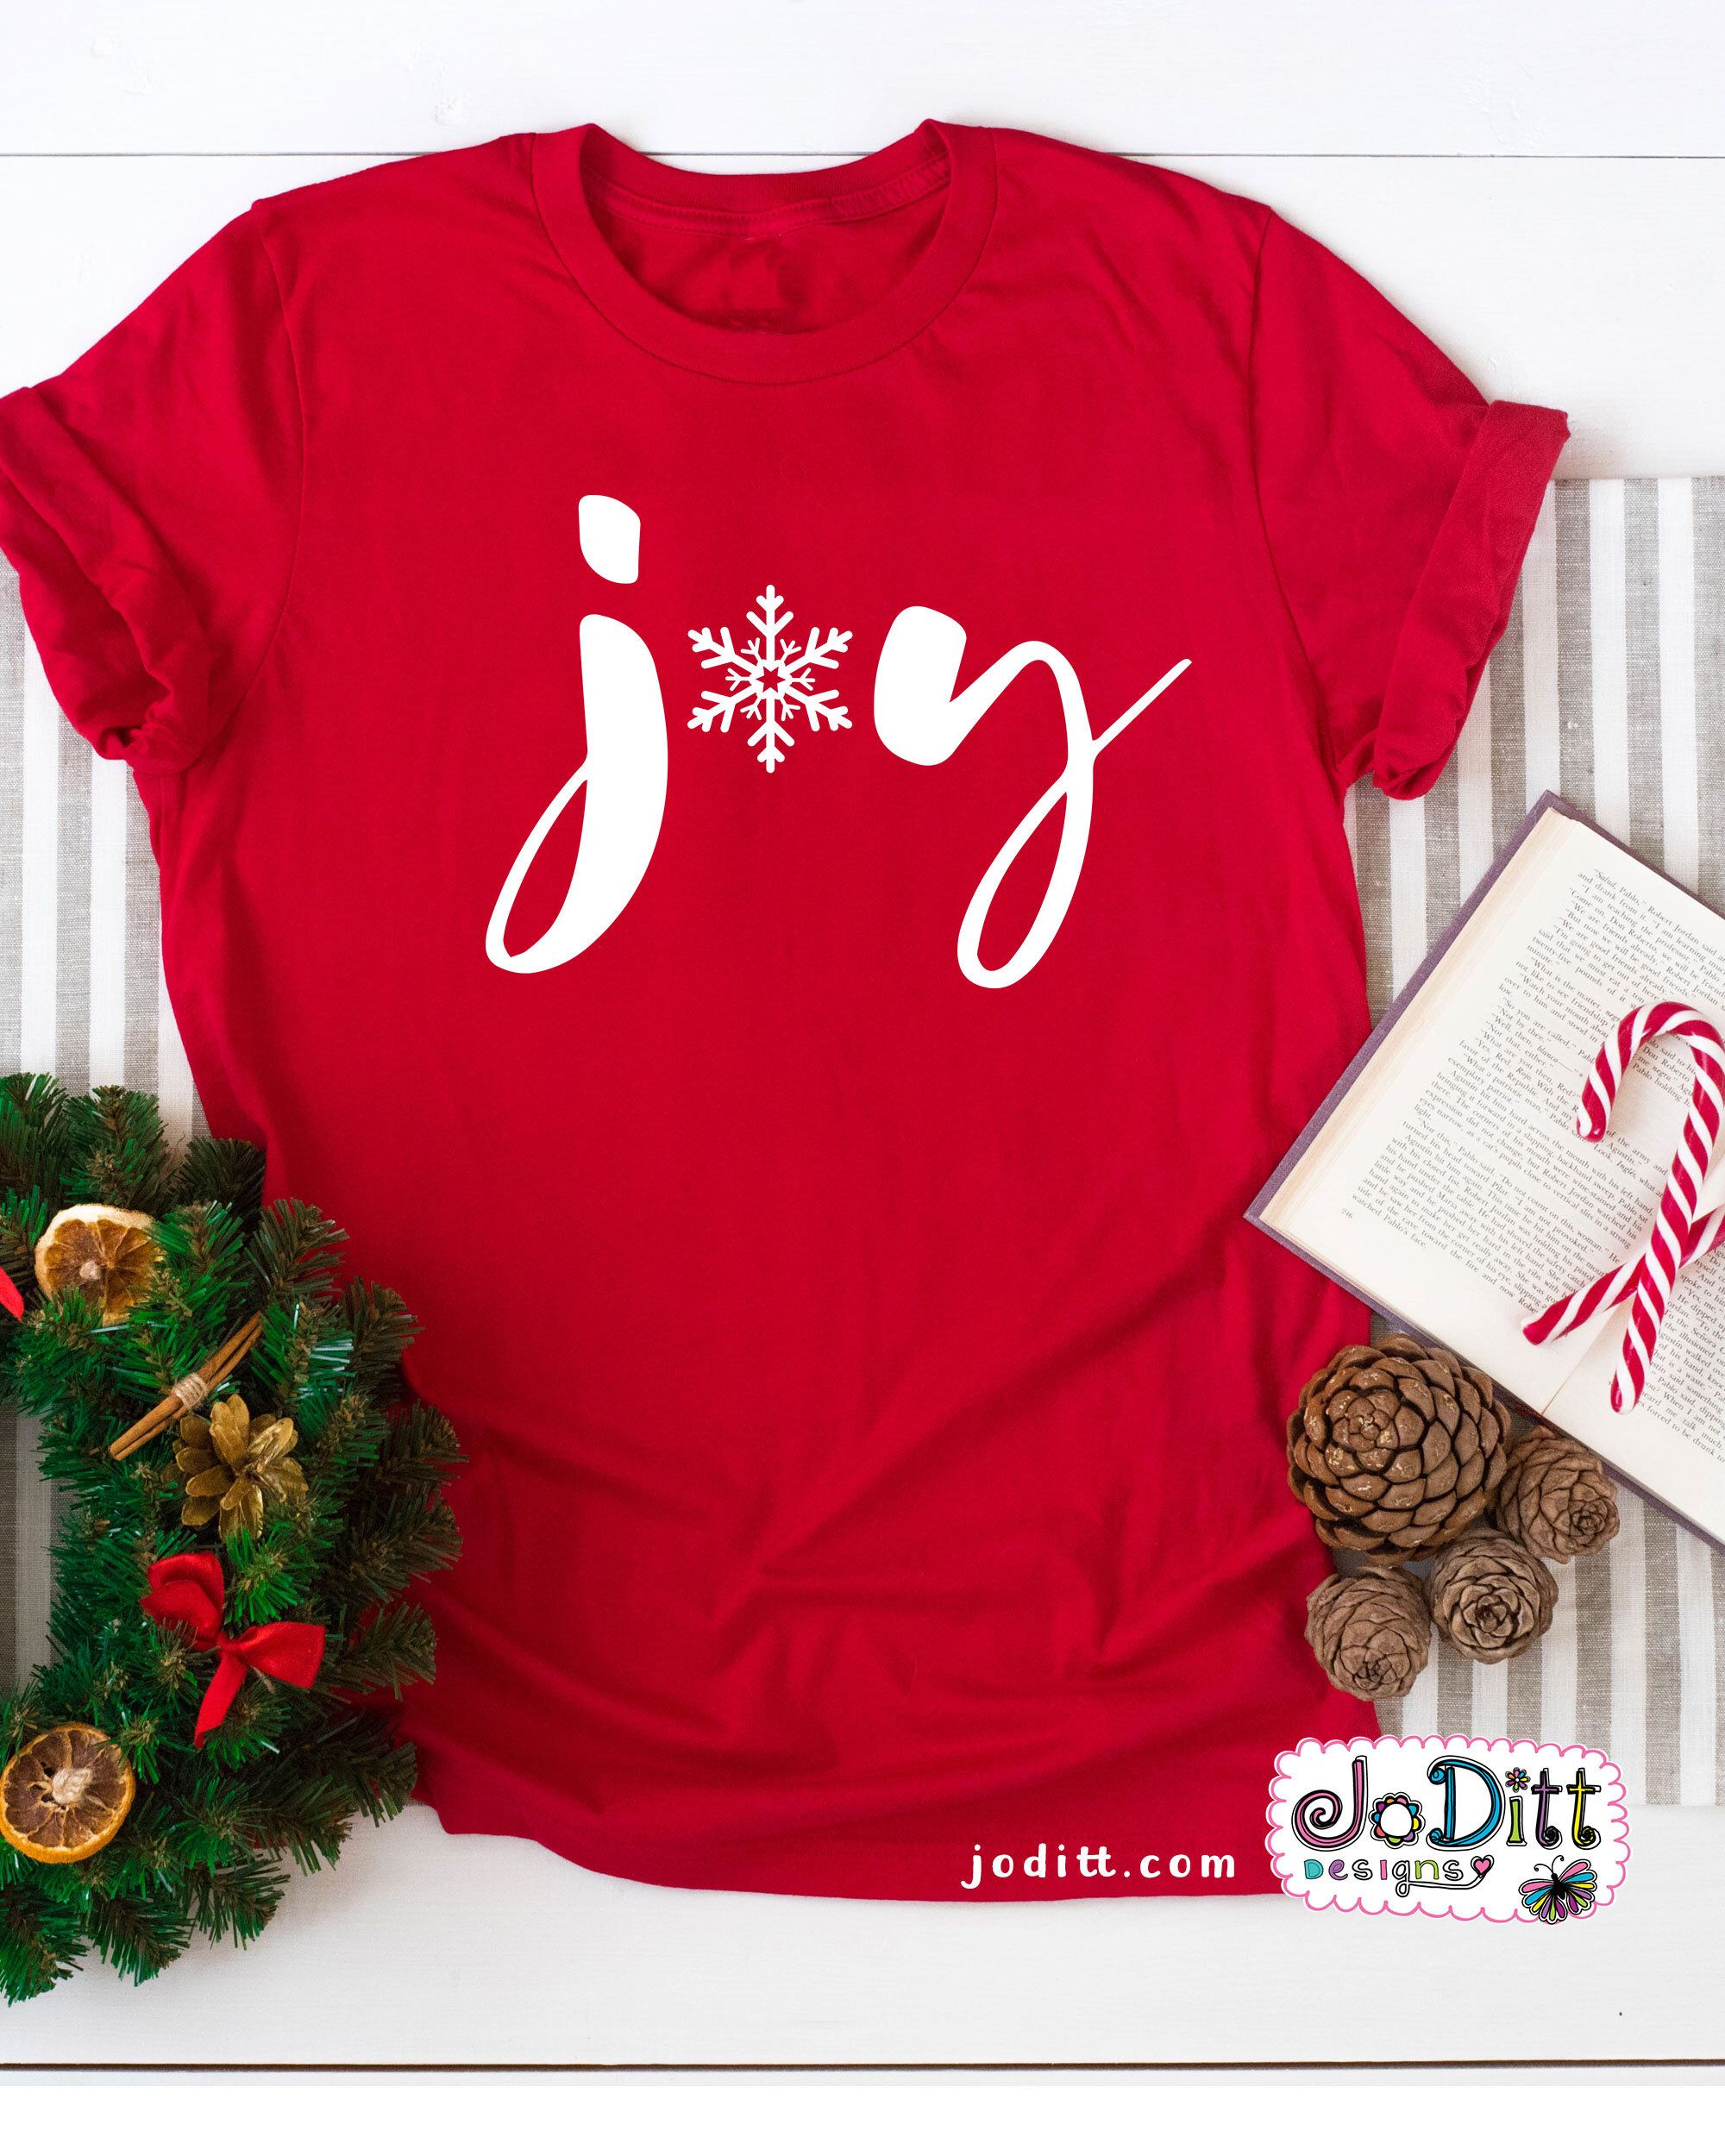 It's easy to spread joy with this festive Joy Christmas Shirt -Red and White Womens Christmas Shirt, Christian Christmas Shirt, Christmas Tee, Merry Christmas Shirt, Christmas Tshirt #christmasjoy #christmasshirt